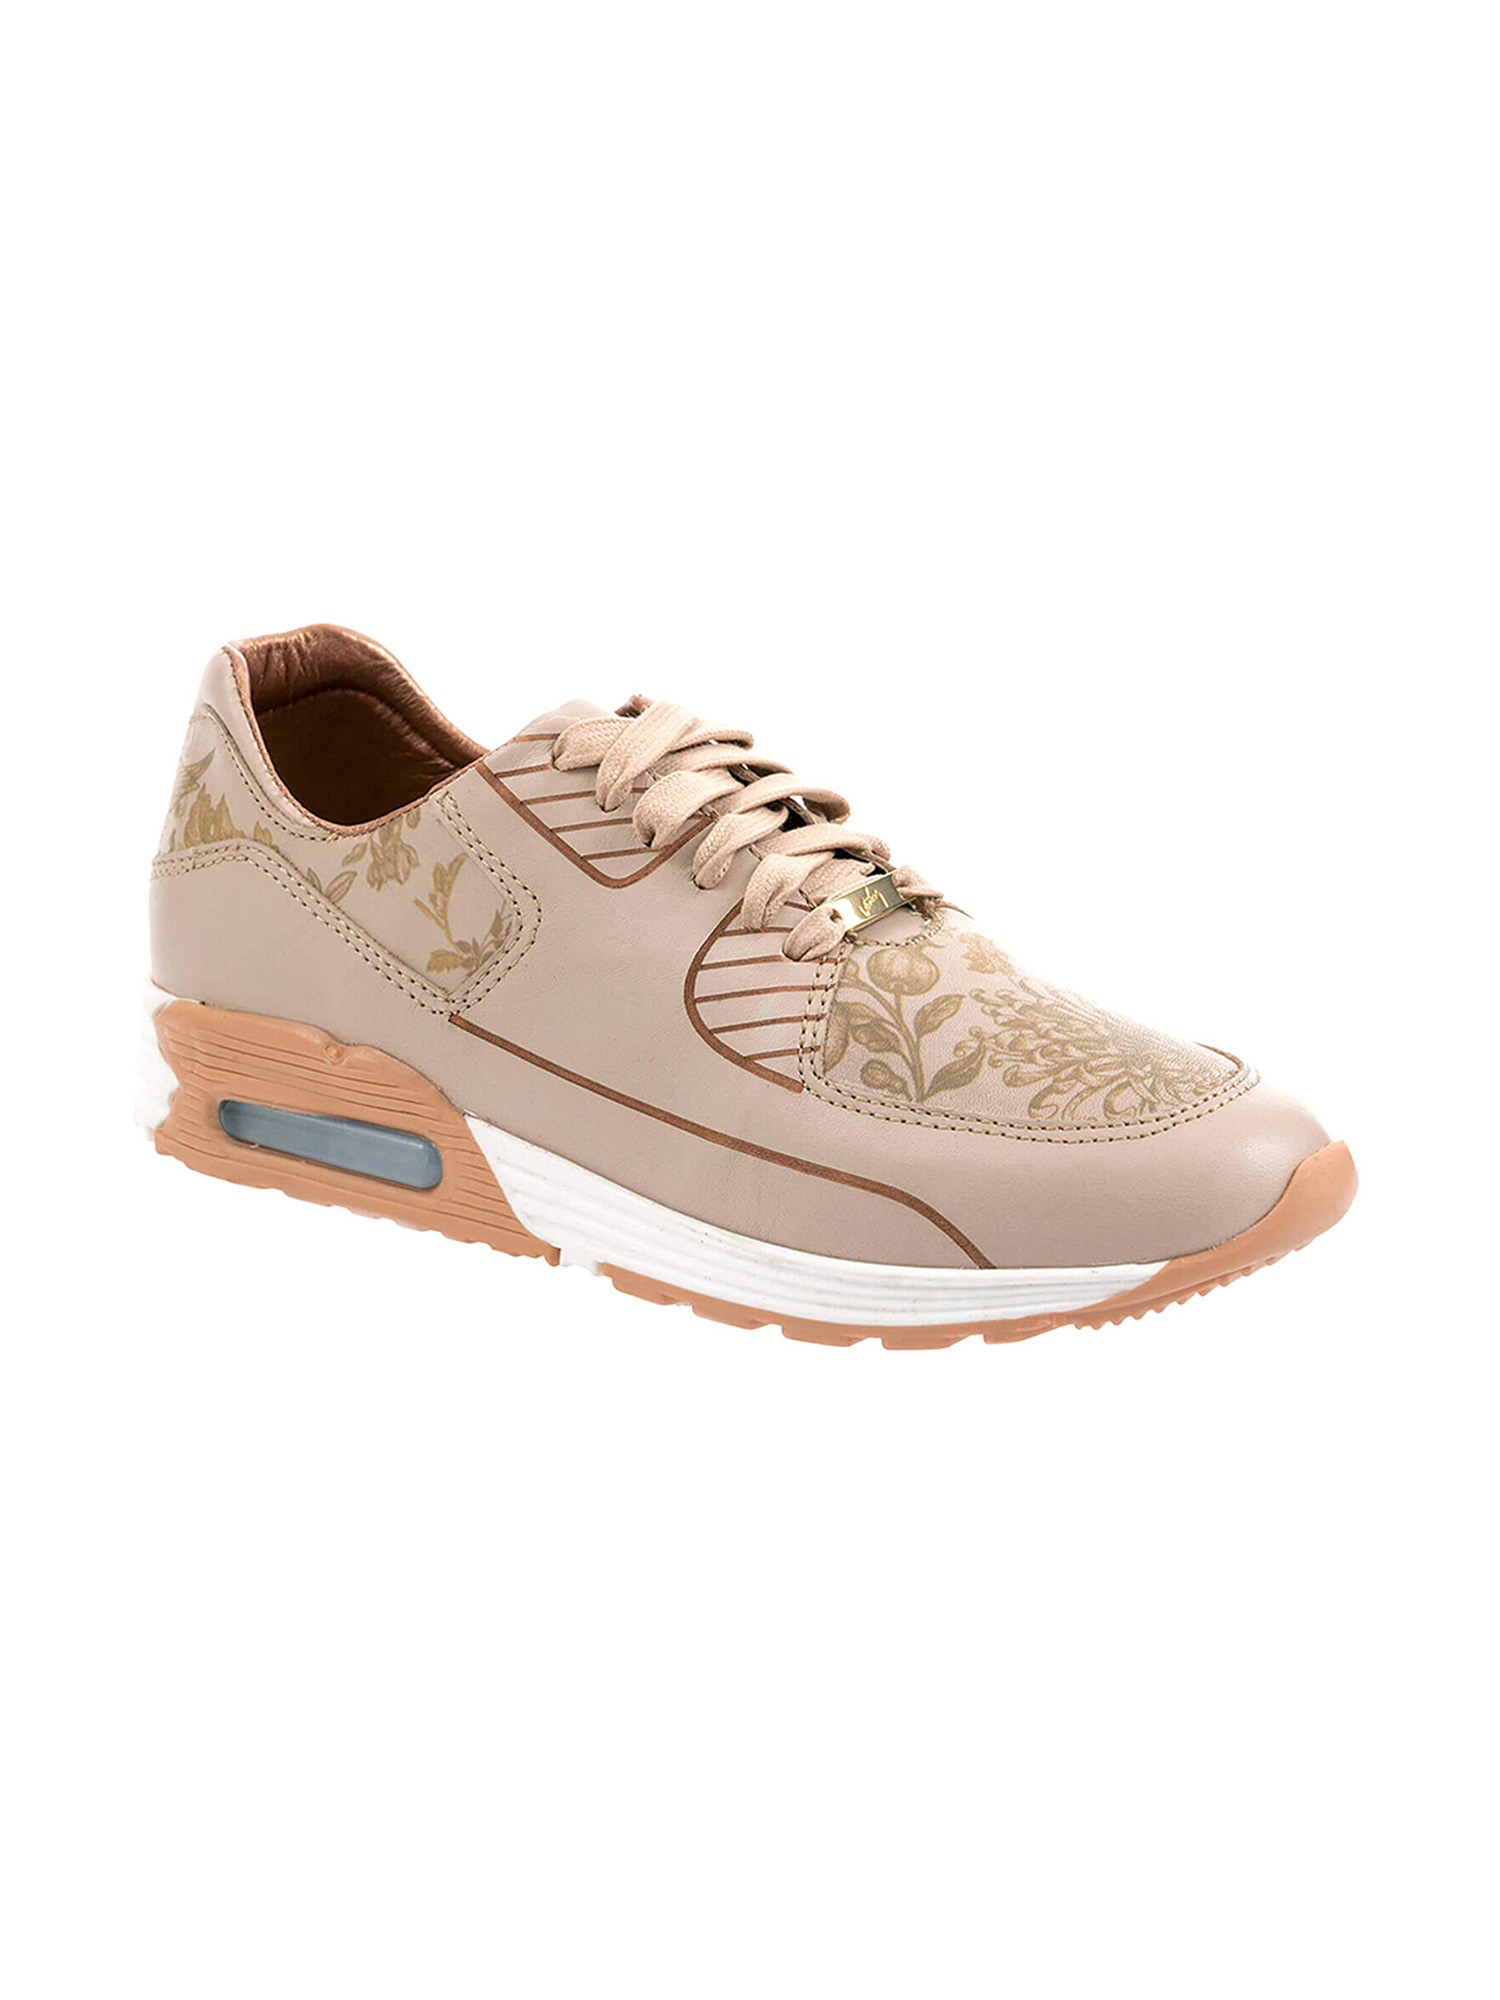 VELEZ Women Genuine Colombian Leather Sneakers | Zapatos Deportivos Cuero Mujer by Colombia